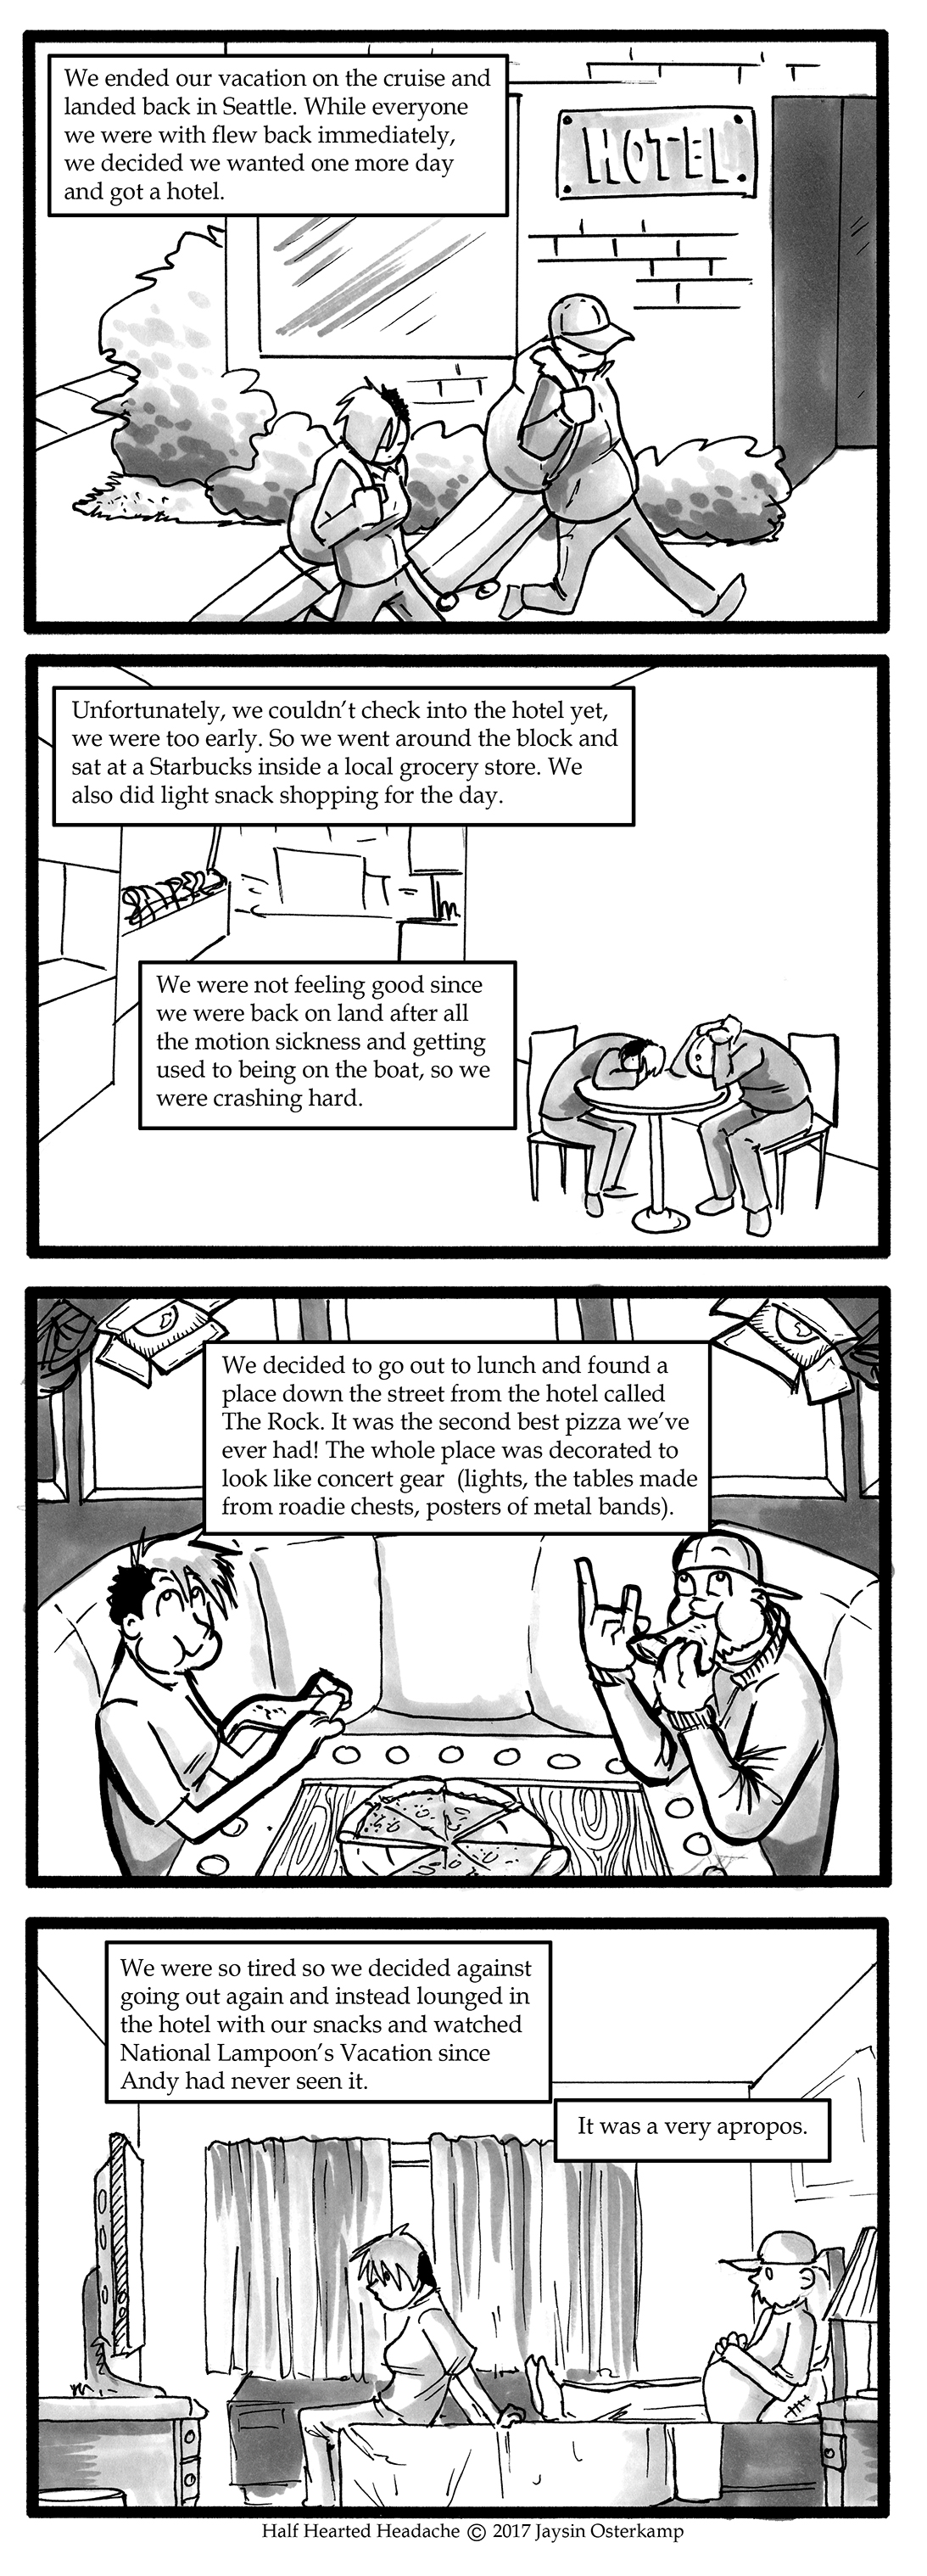 202 – Going home part 1